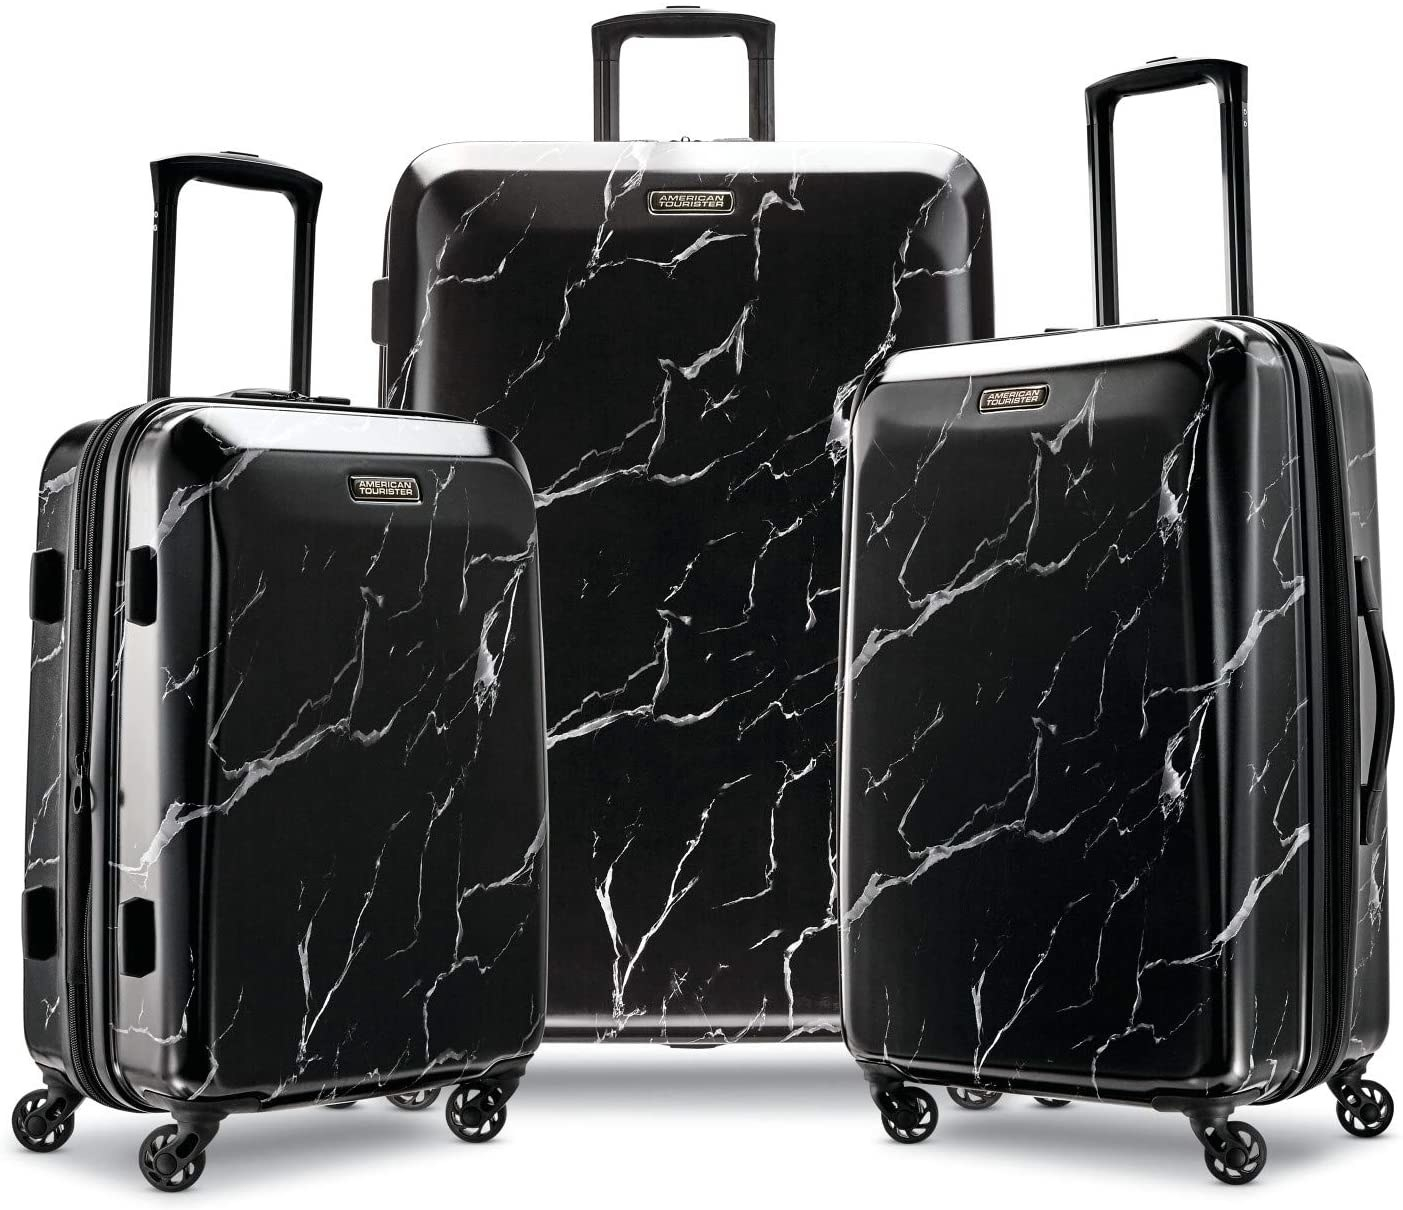 Black and white marble print luggage set, each in a different size